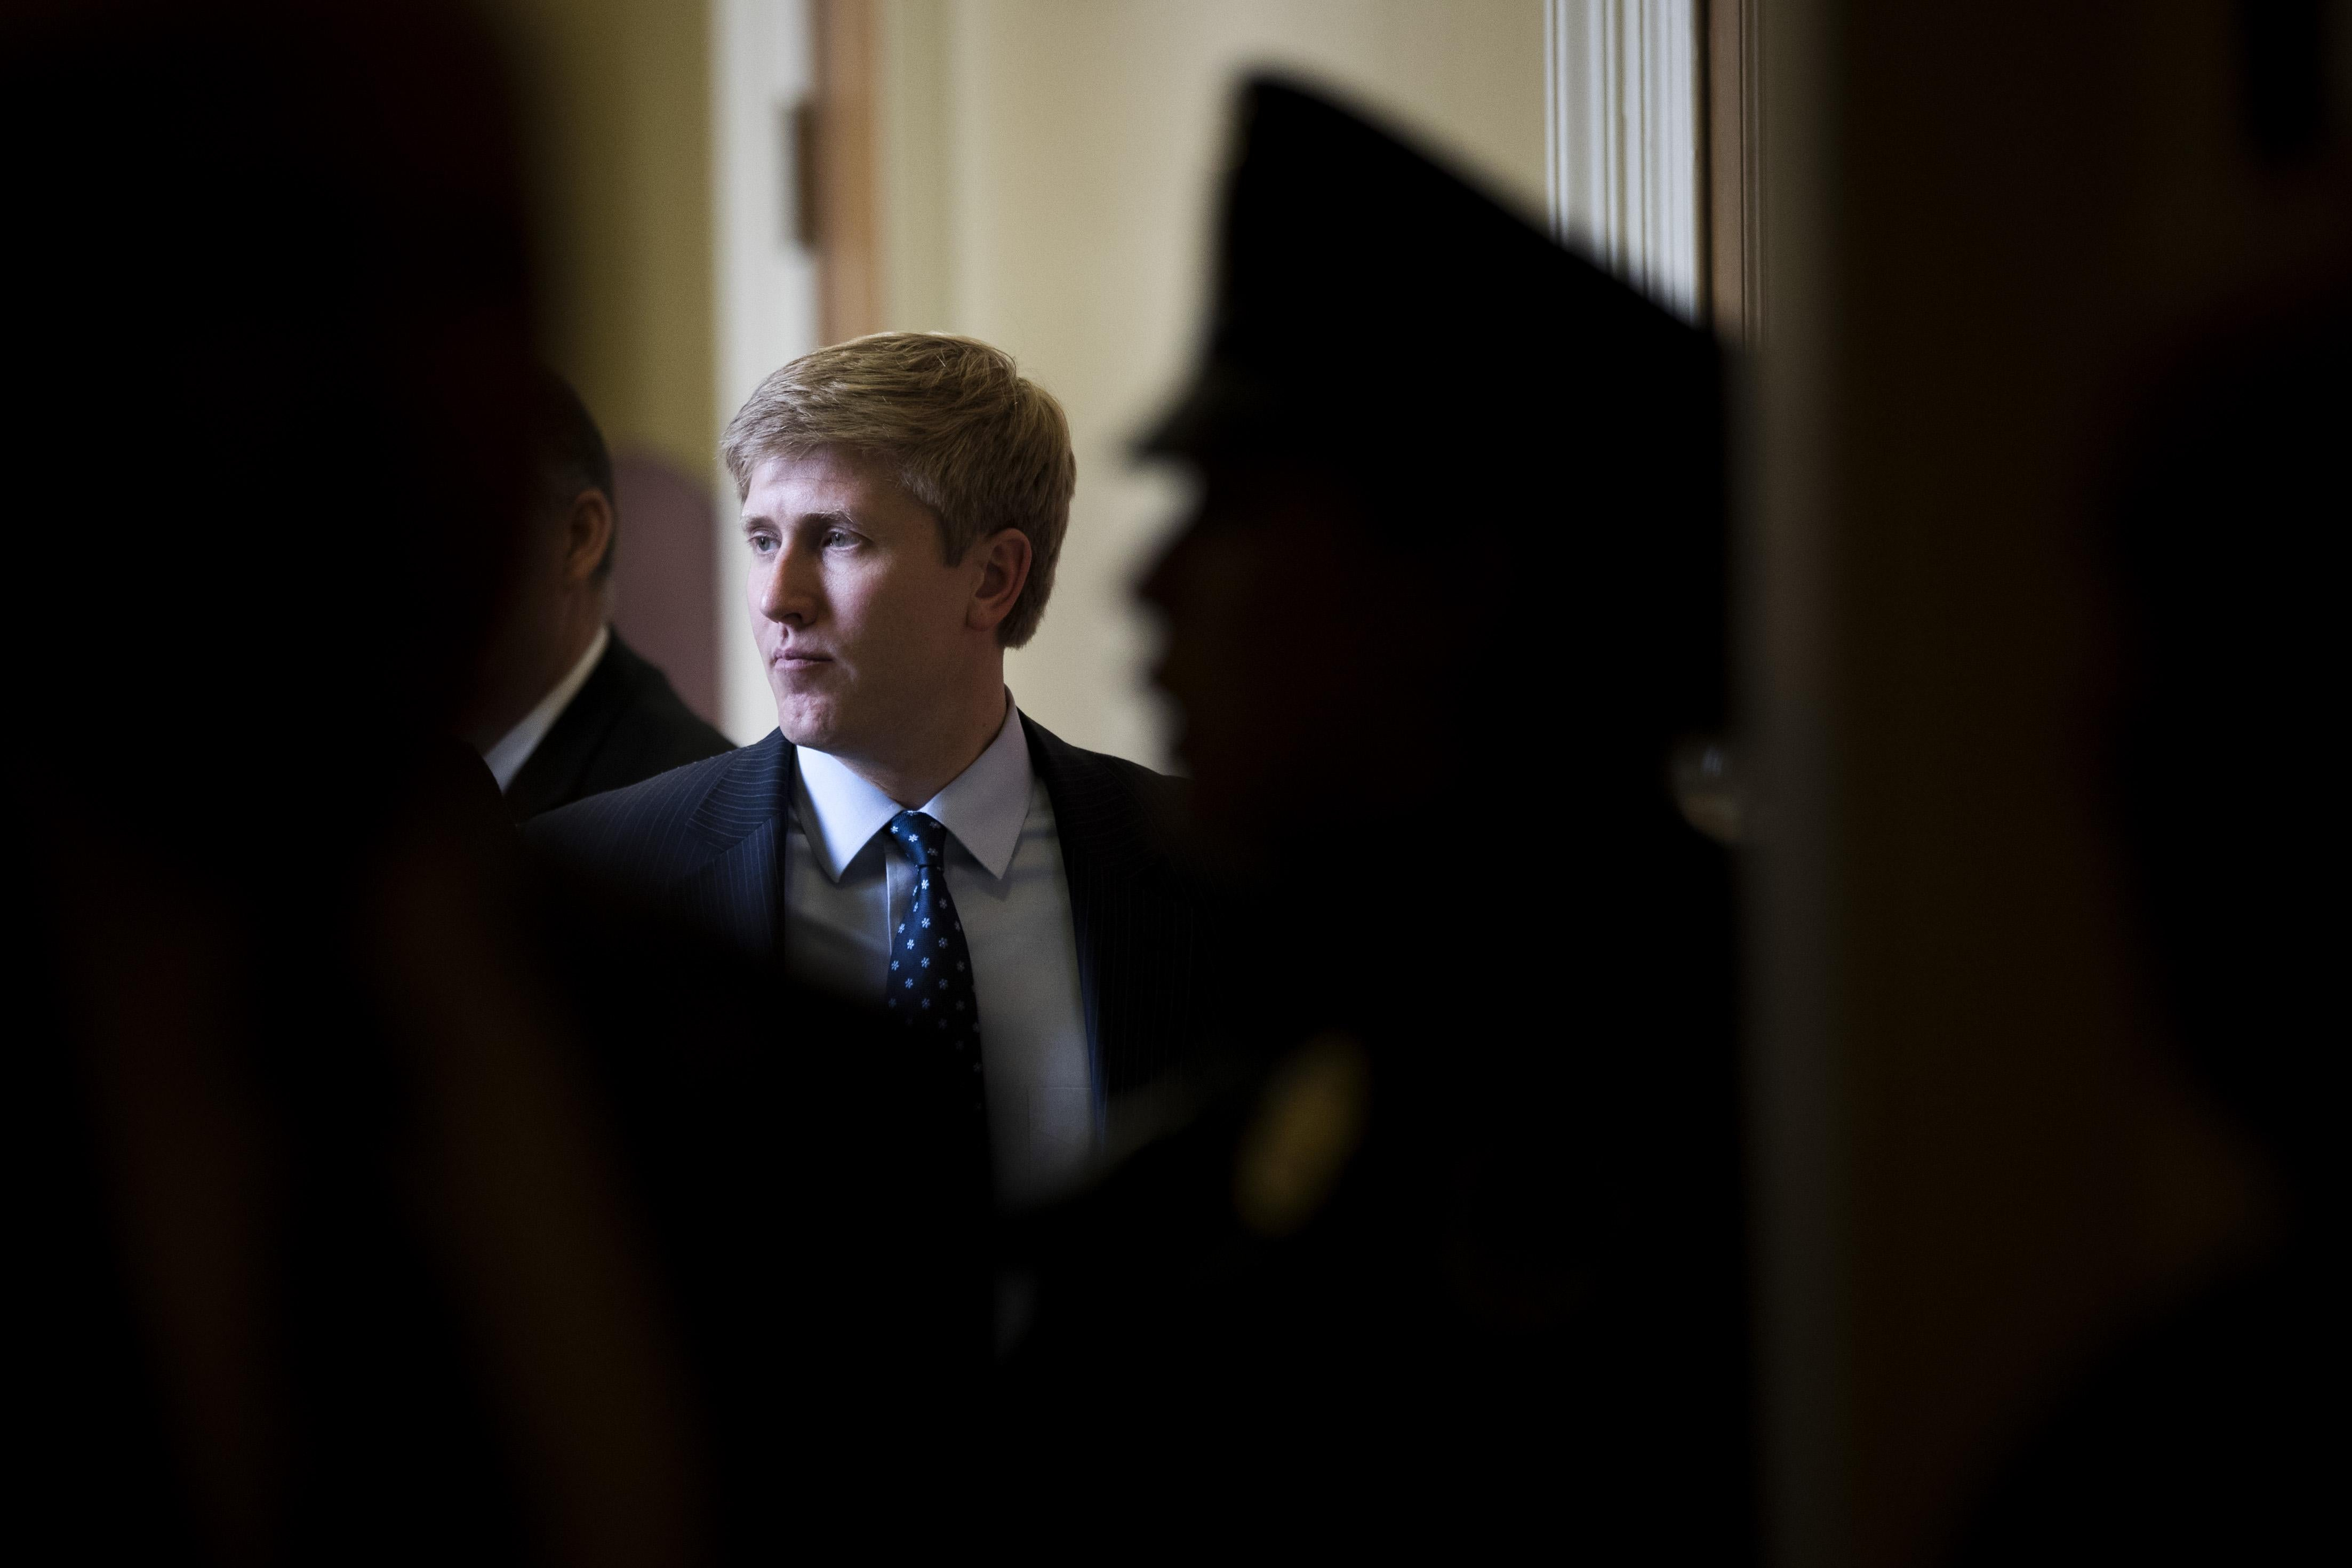 Nick Ayers, the chief of staff to Vice President Mike Pence, stands outside a meeting with Senate Republicans on Capitol Hill, December 5, 2017 in Washington, D.C.